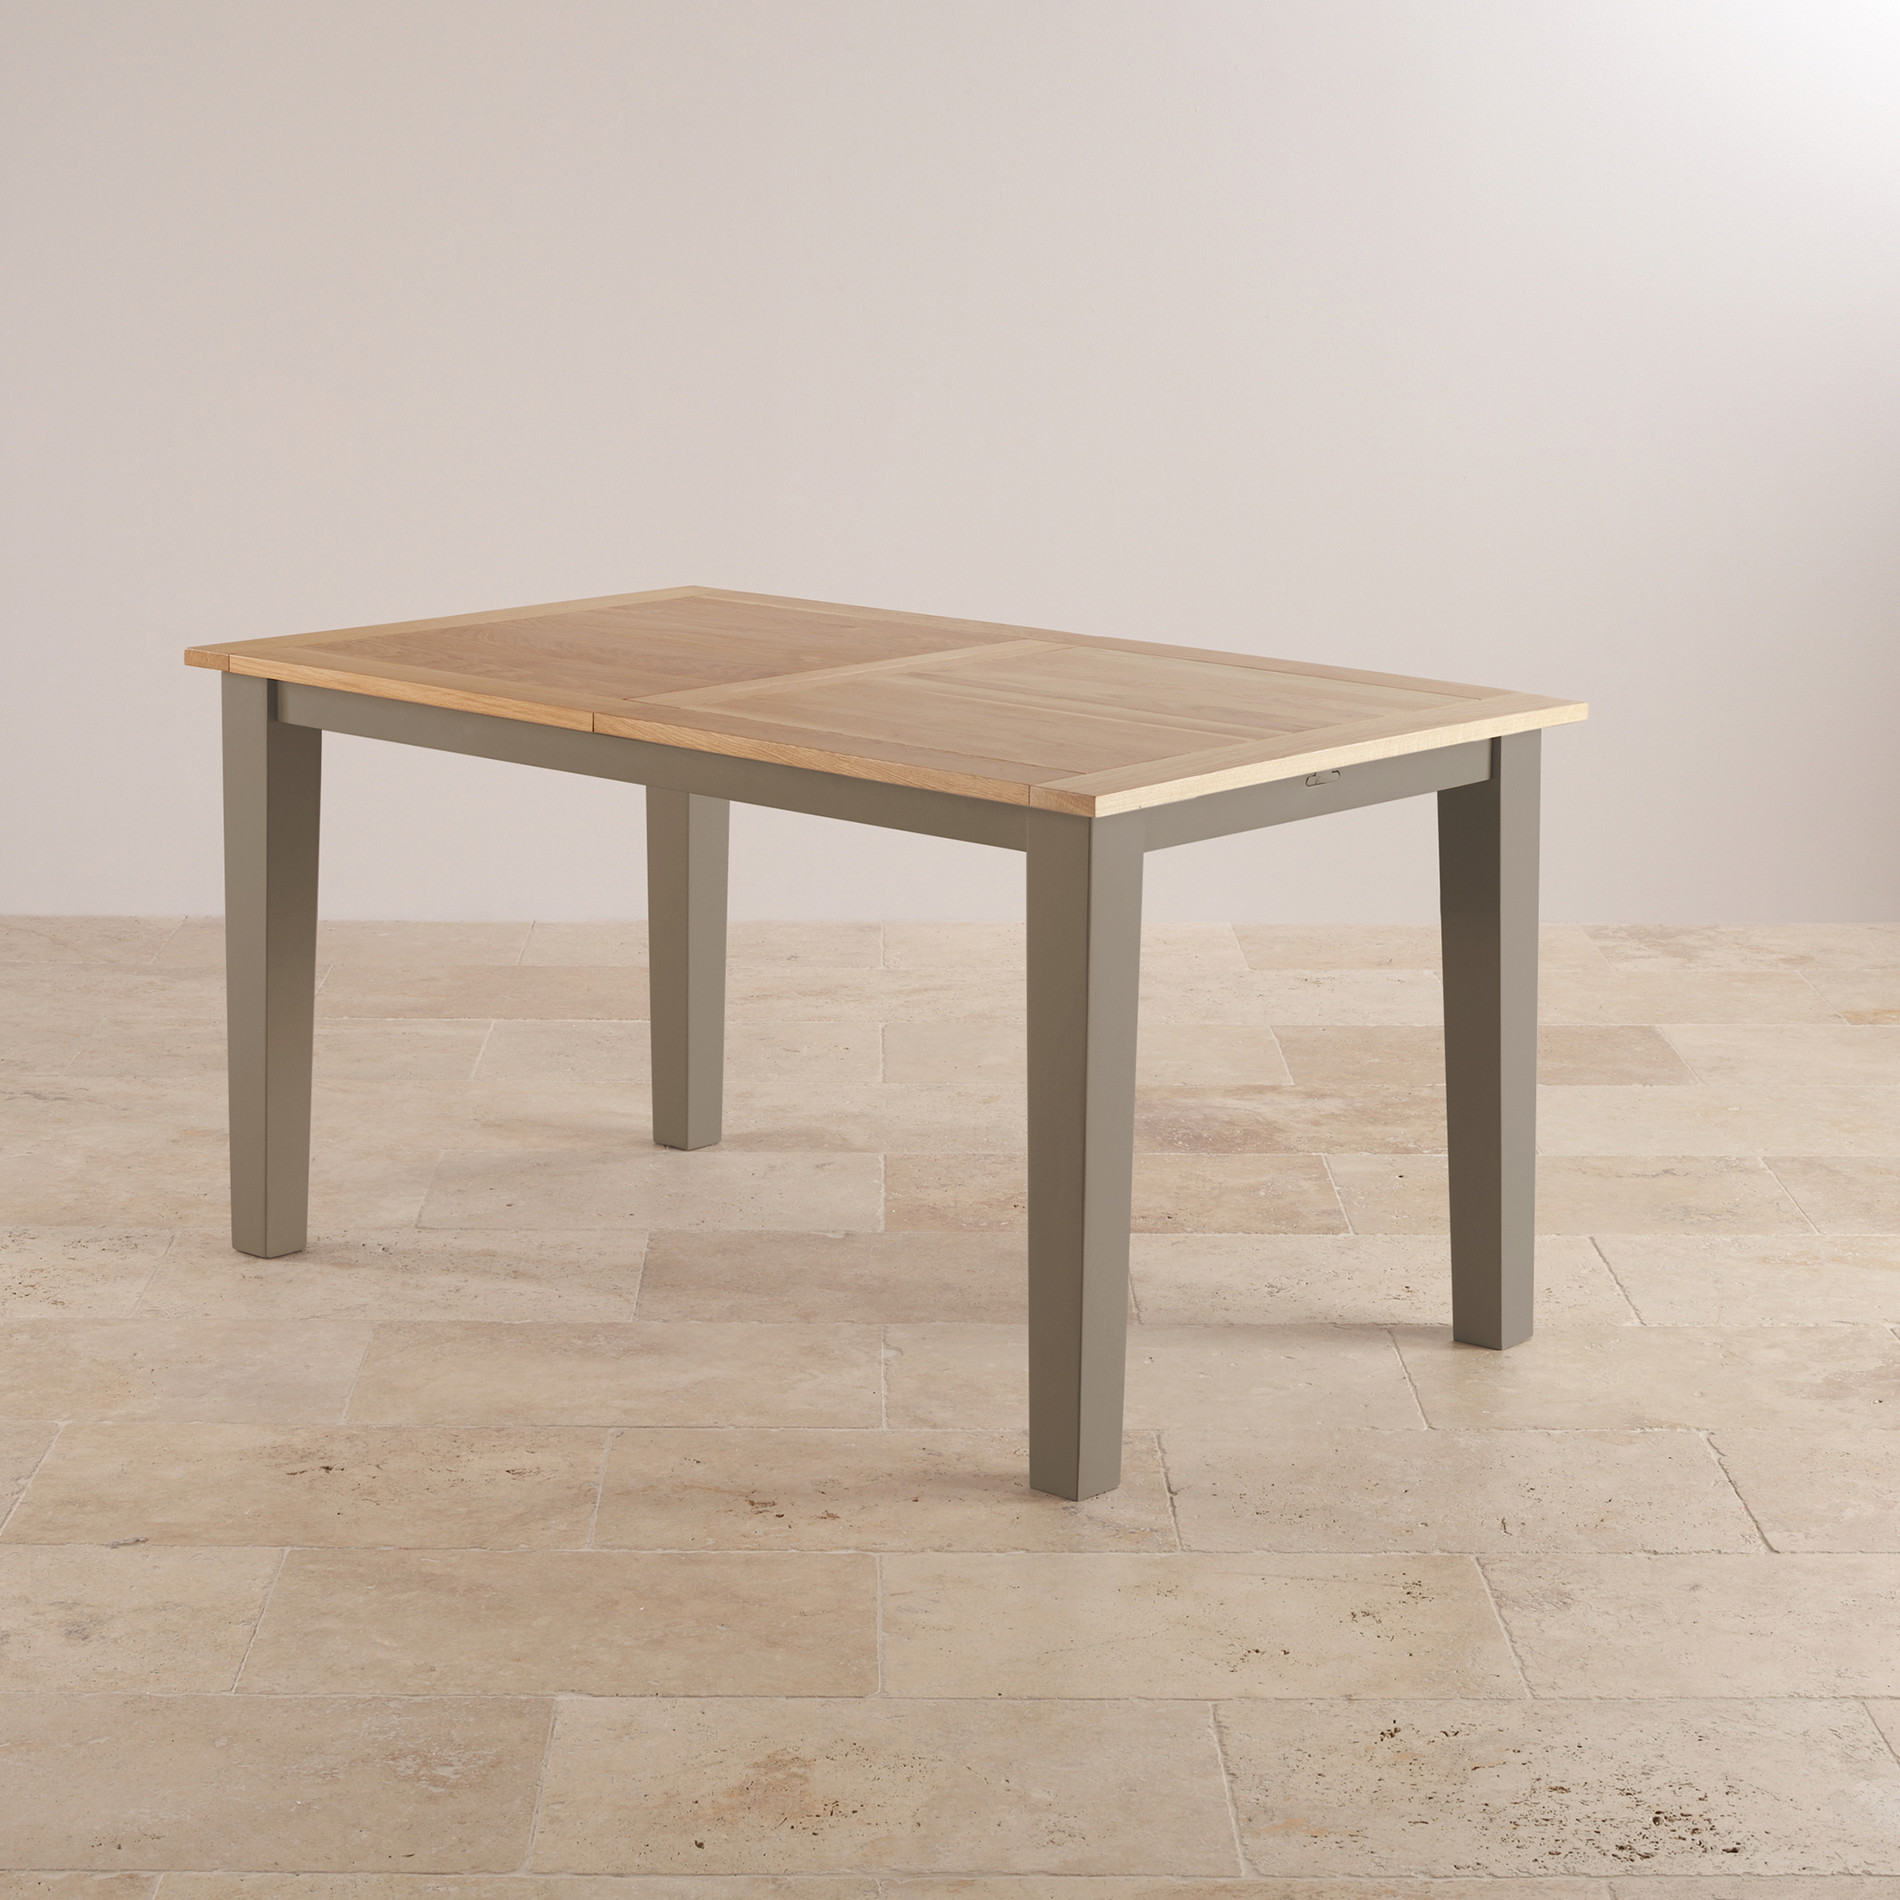 St ives 5ft extending dining table in light grey painted oak for 5ft dining room table